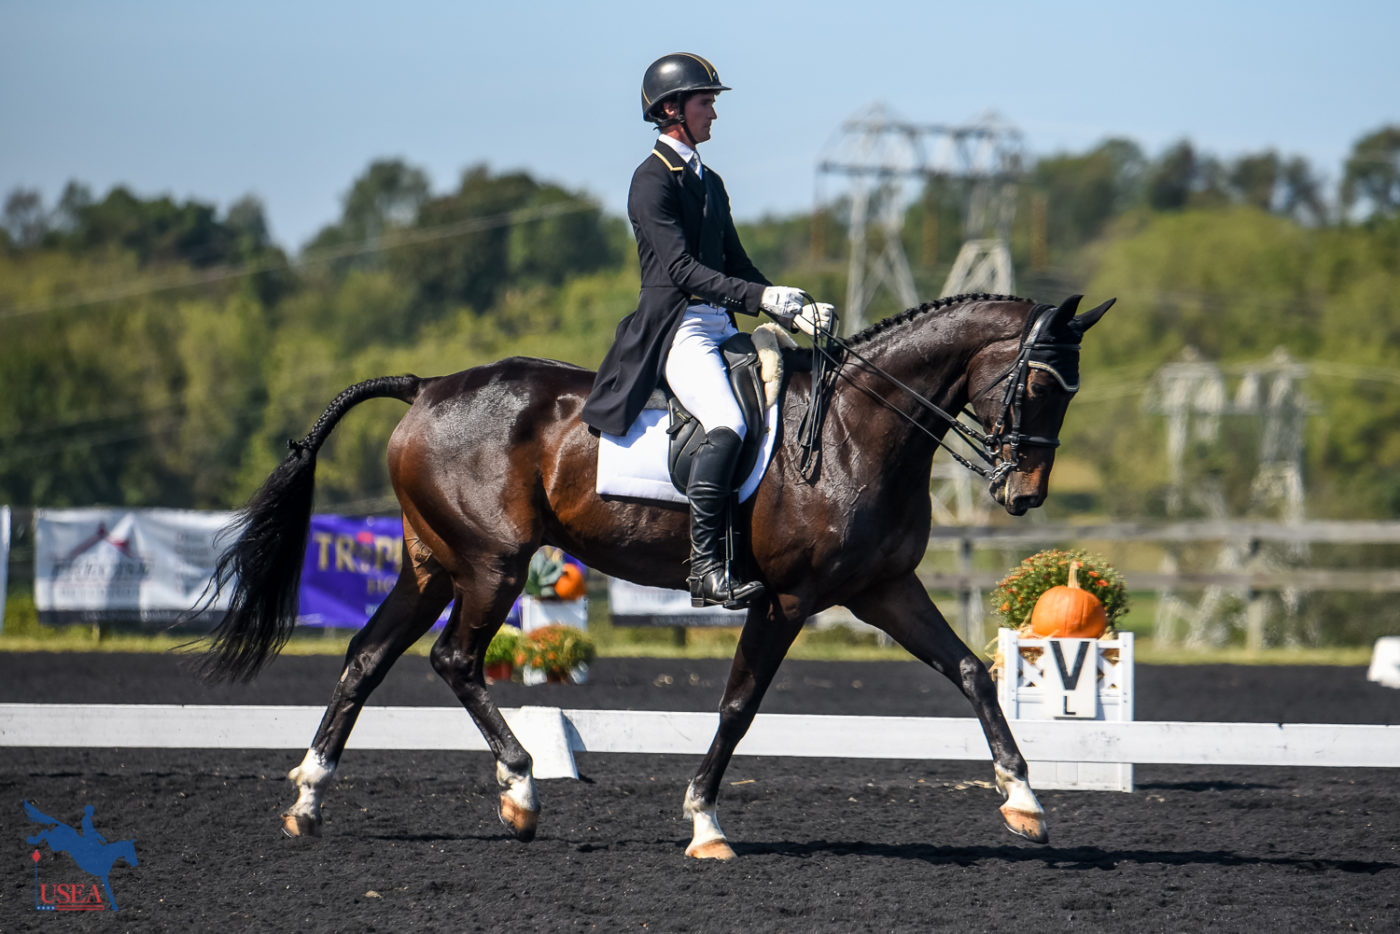 10th - Woods Baughman and C'est La Vie 135 - 31.5